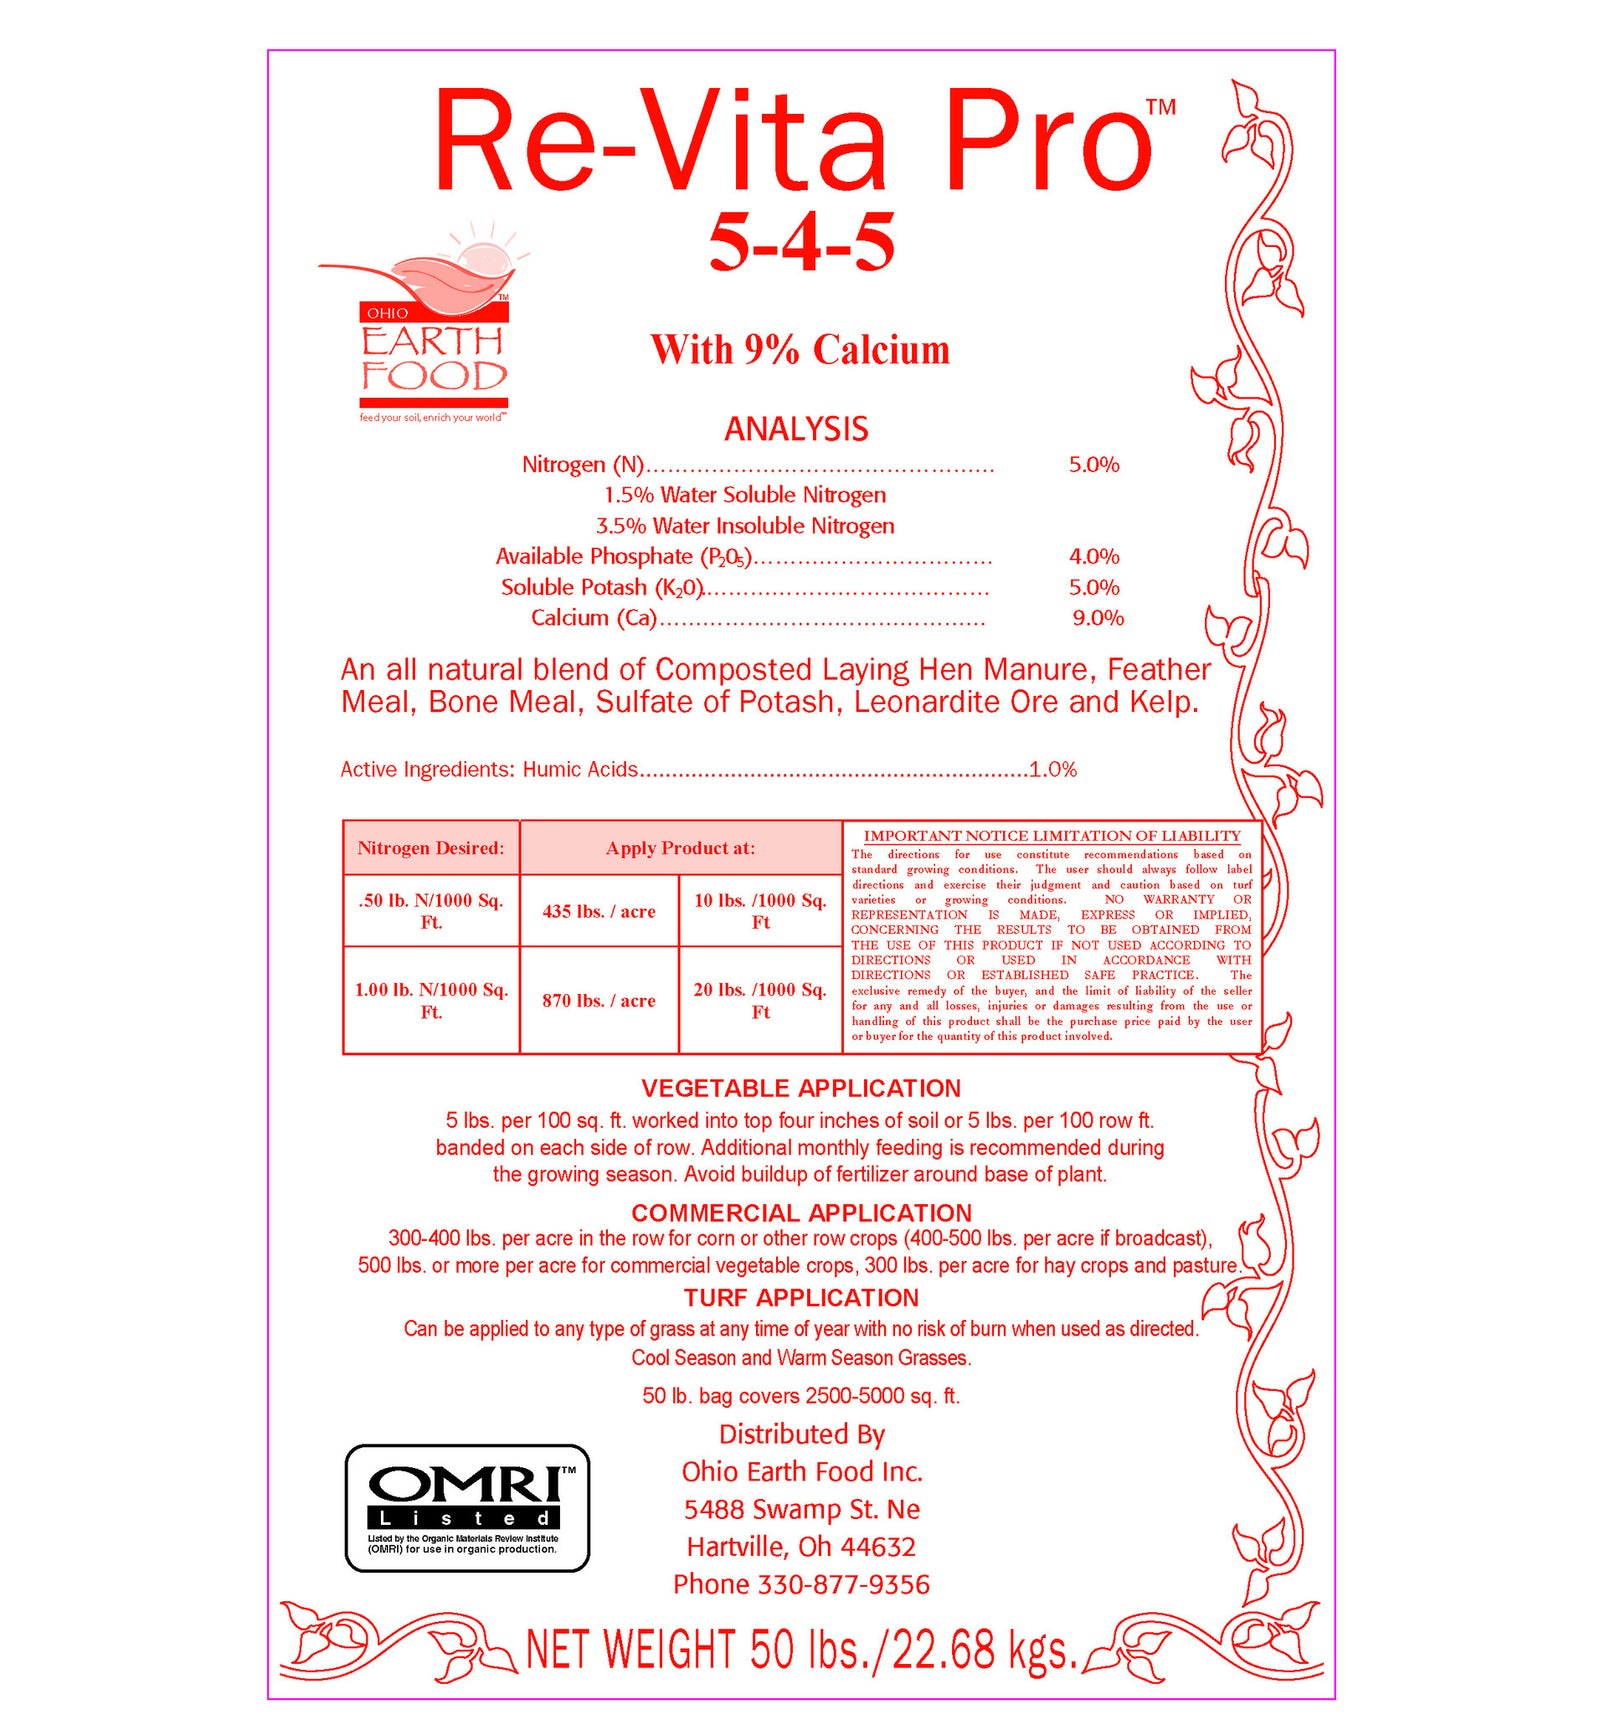 #1 For Commercial Growers Re-Vita Pro (5-4-5)* 50# bag OMRI listed